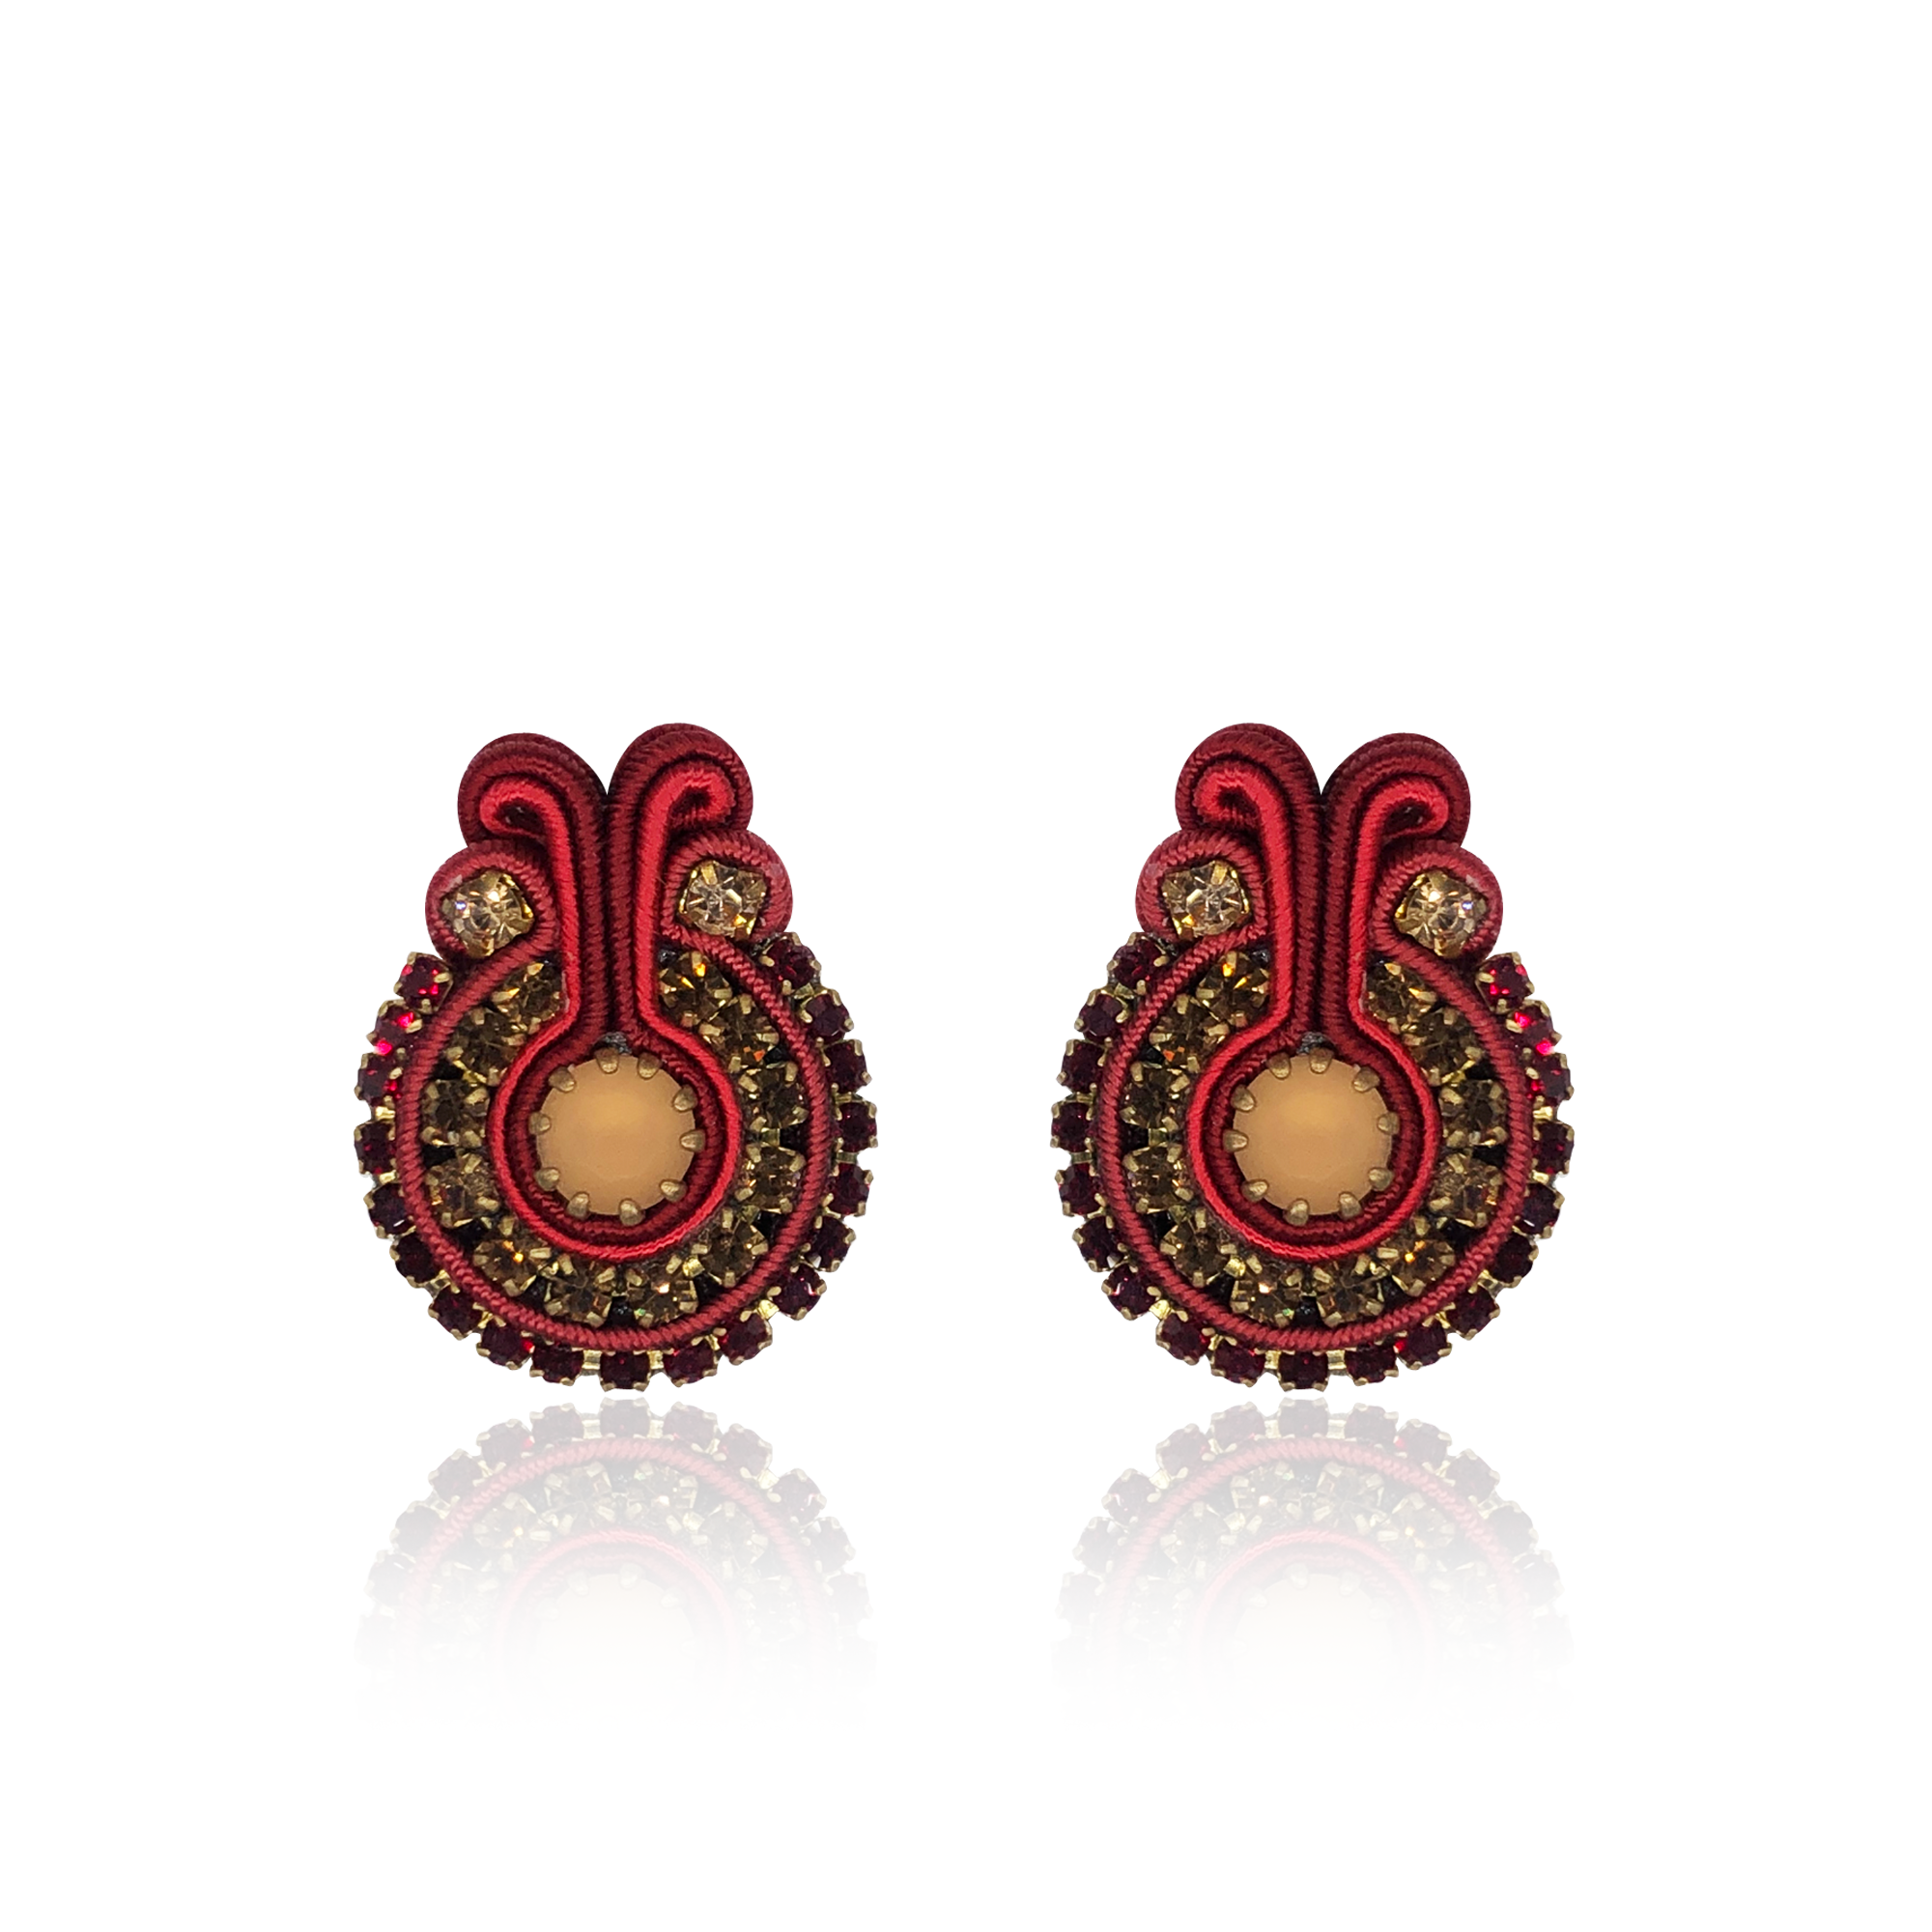 Rer Mini Francesca Earrings